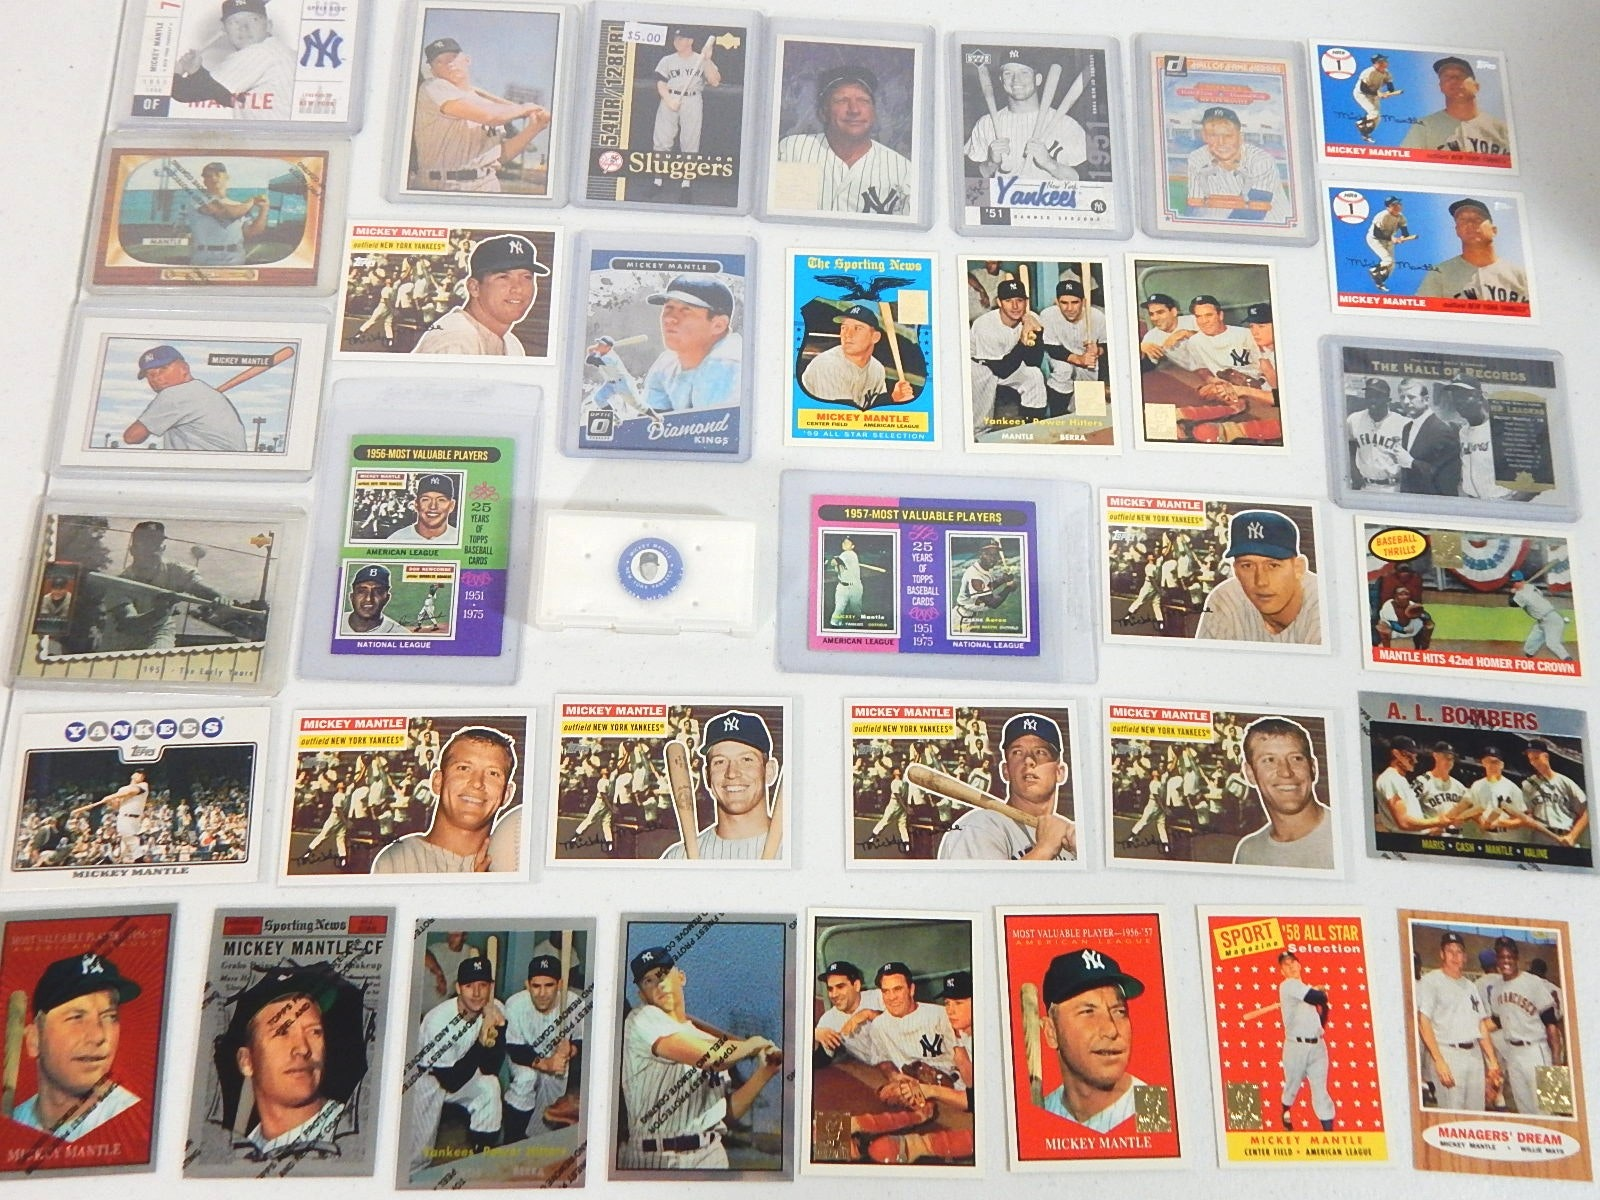 Mickey Mantle Baseball Card Lot and 1969 Pin with 1975 MVP Cards, Archives